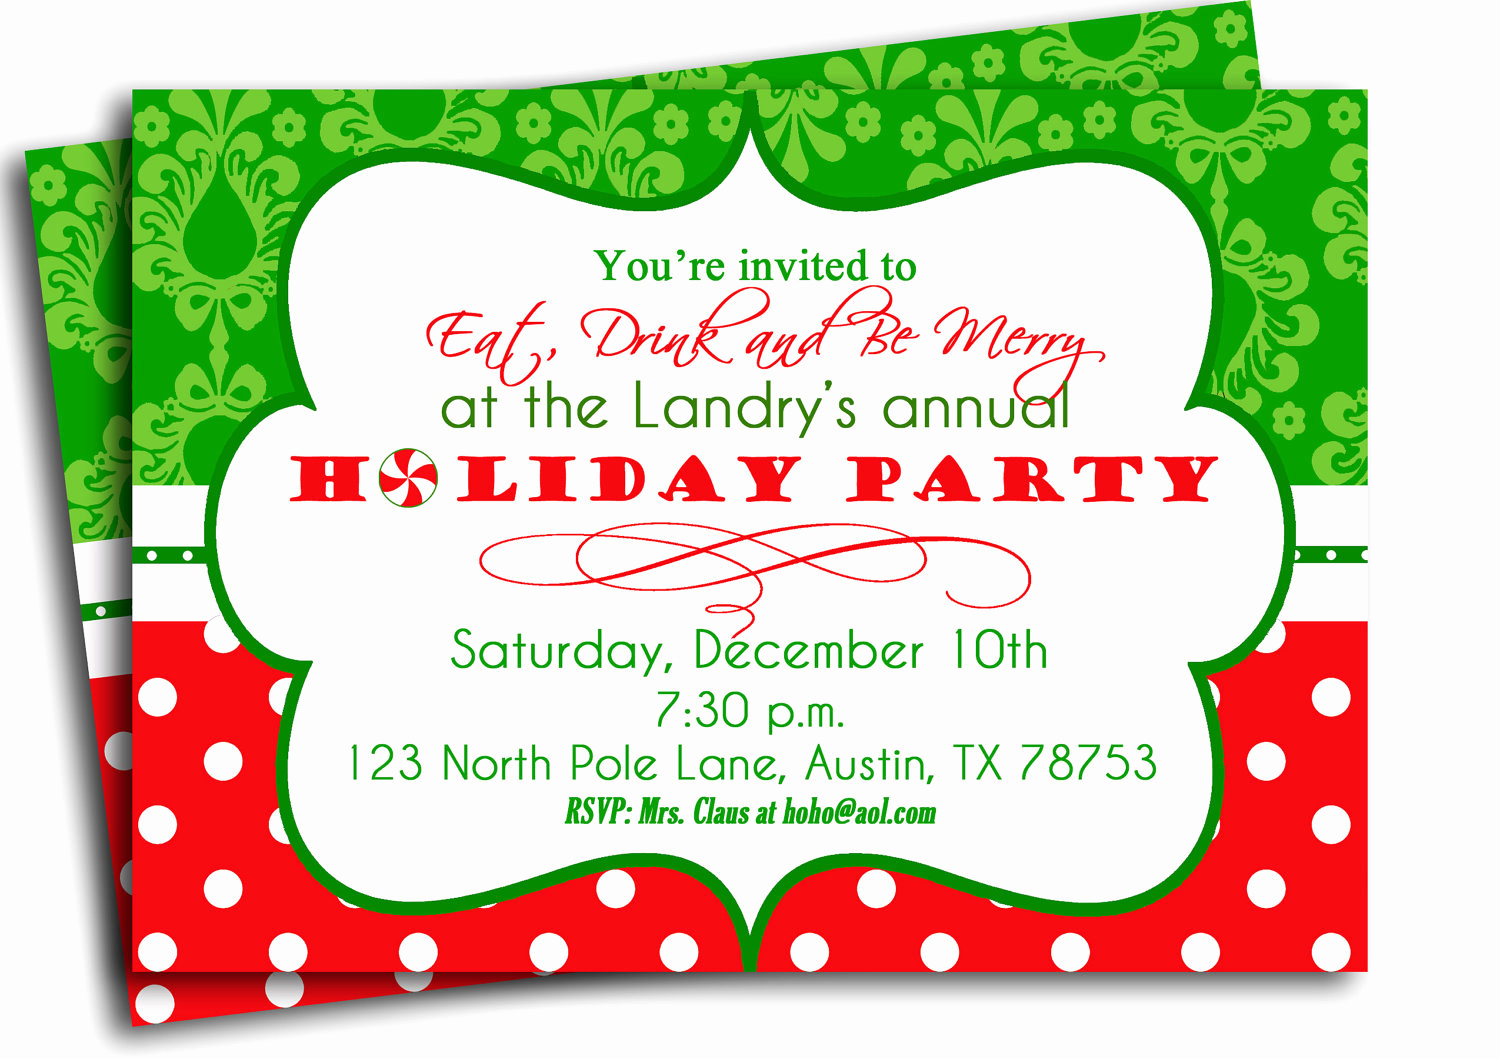 Christmas Party Invitation Idea Luxury Christmas Party Invitation Printable Traditional Holiday